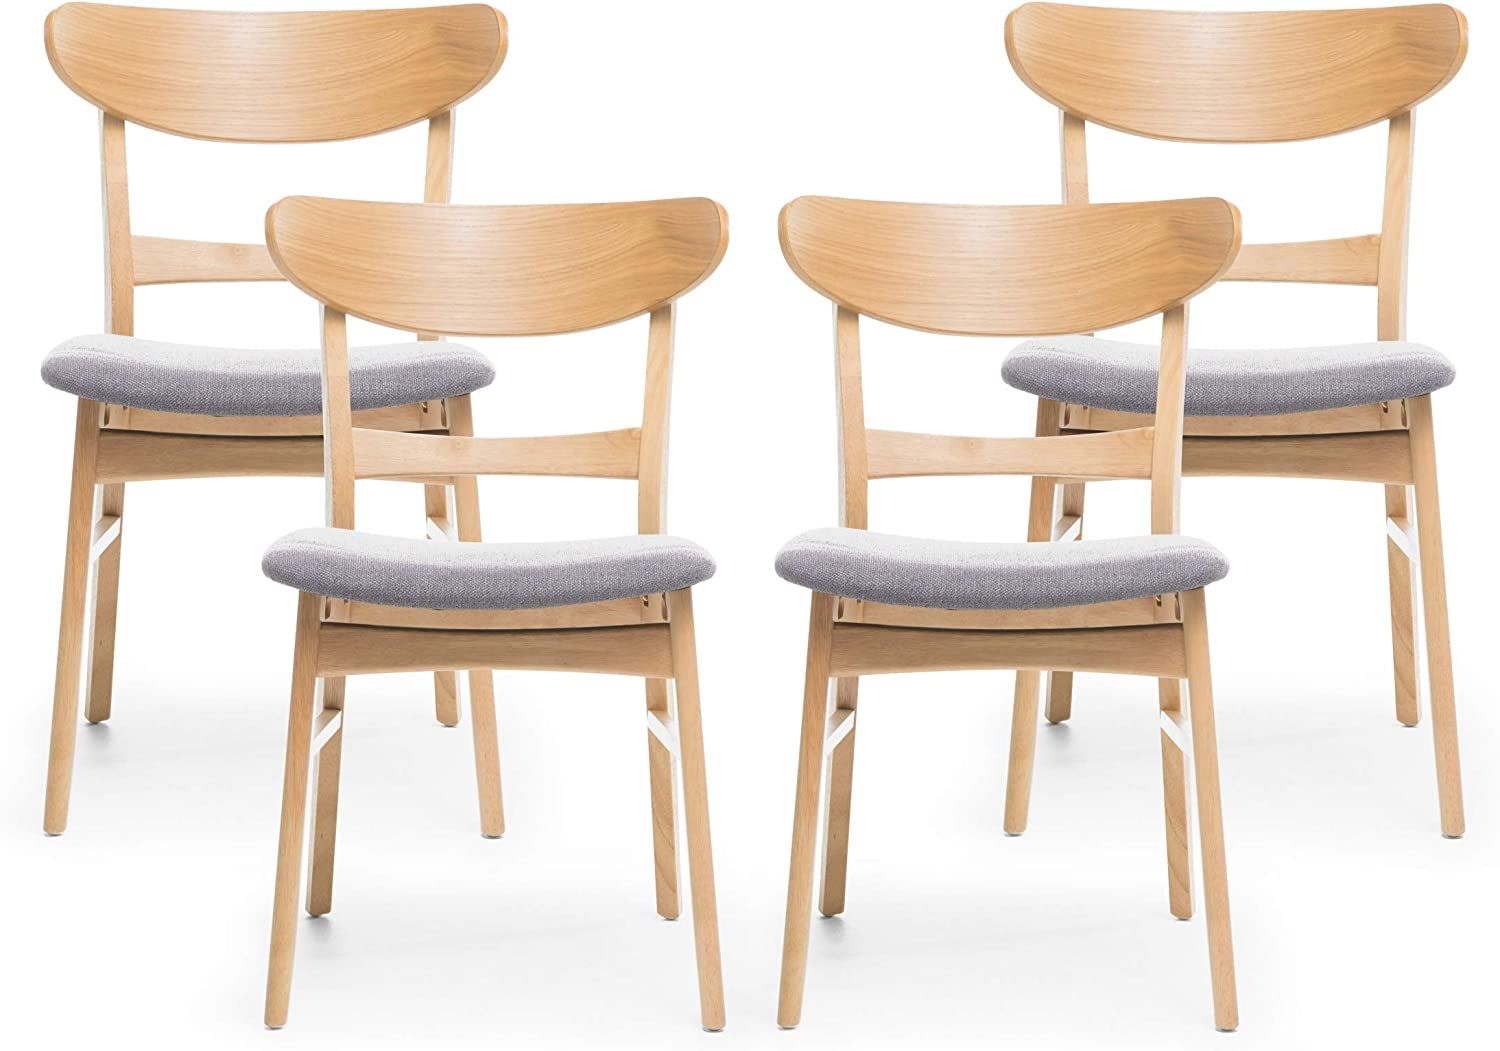 Christopher Knight Home Heather Mid-Century Modern Dining Chairs (Set of 4), Dark Gray, Natural Oak